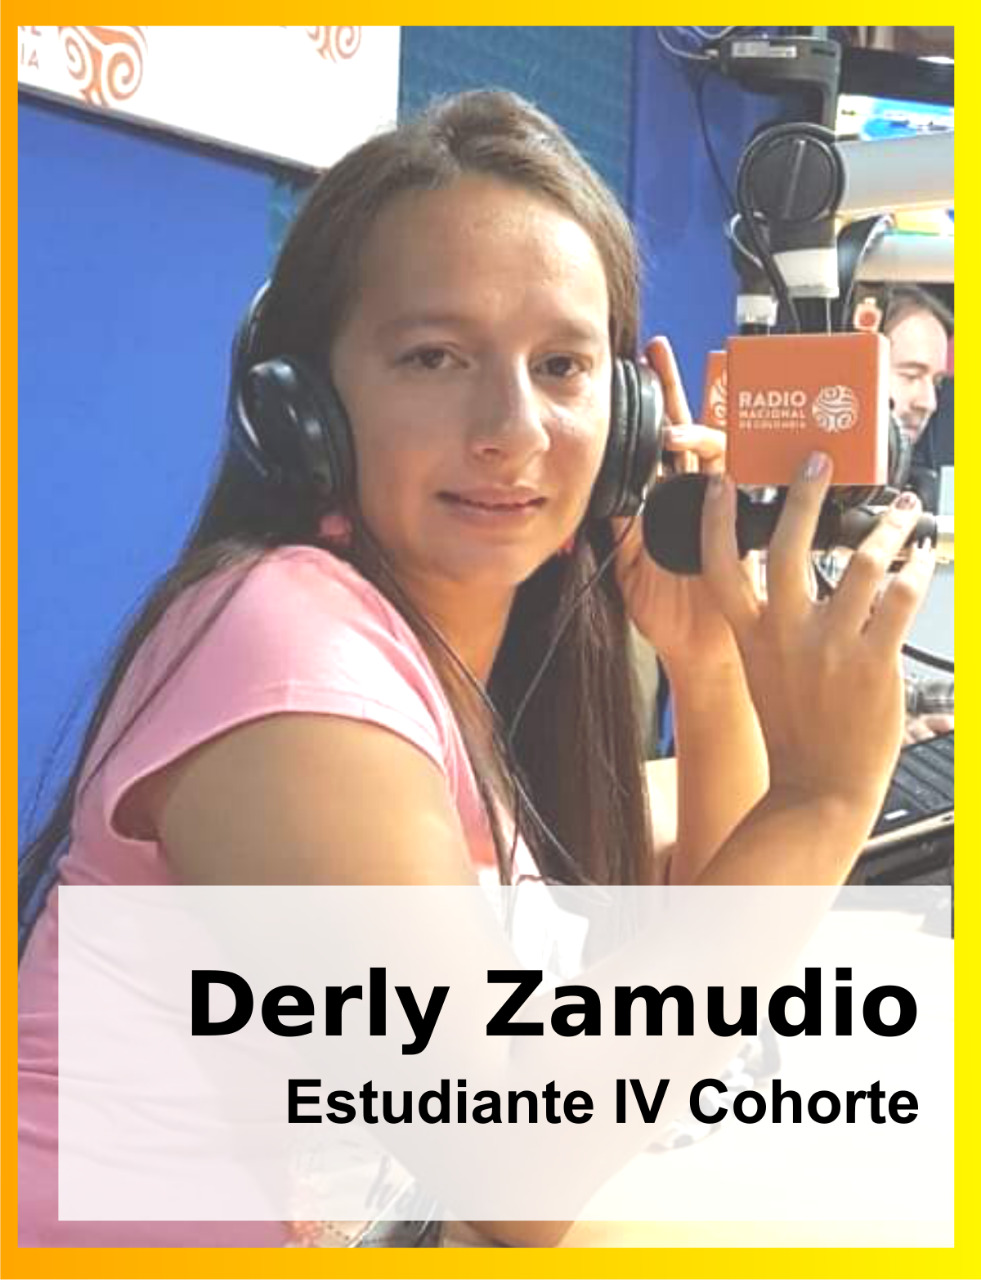 Derly Zamudio